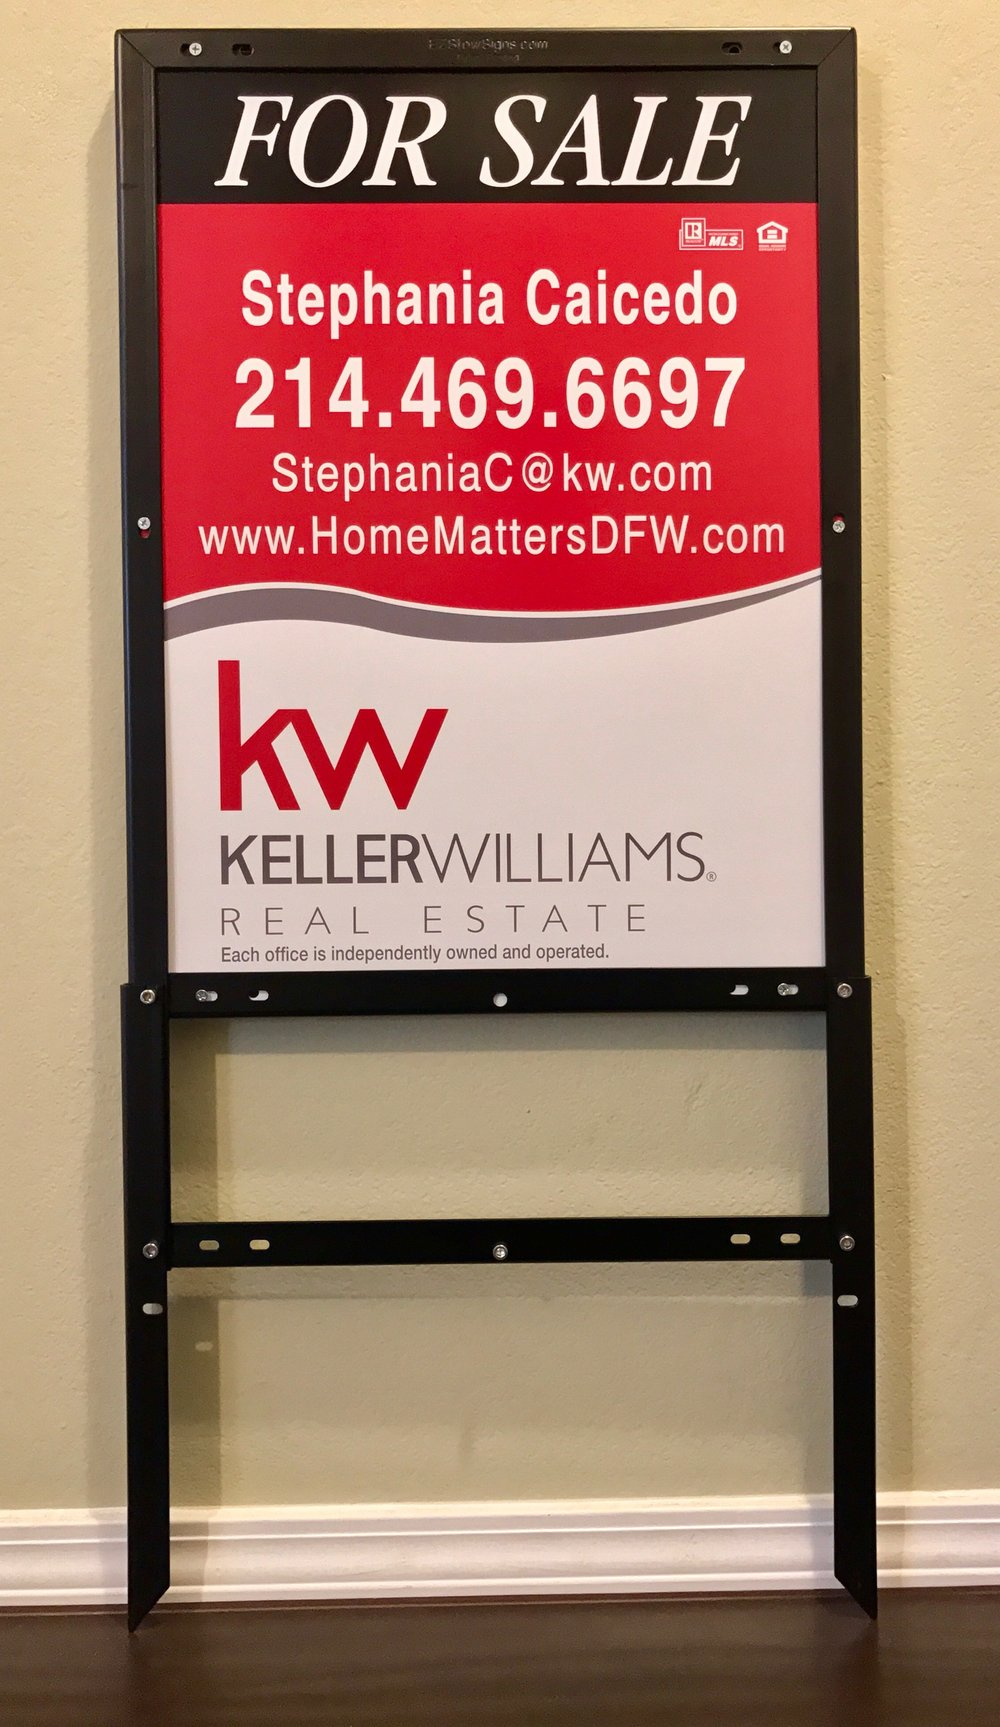 Keller Williams Realty 24%22 x 18%22 Panel & EZ Frame.jpeg